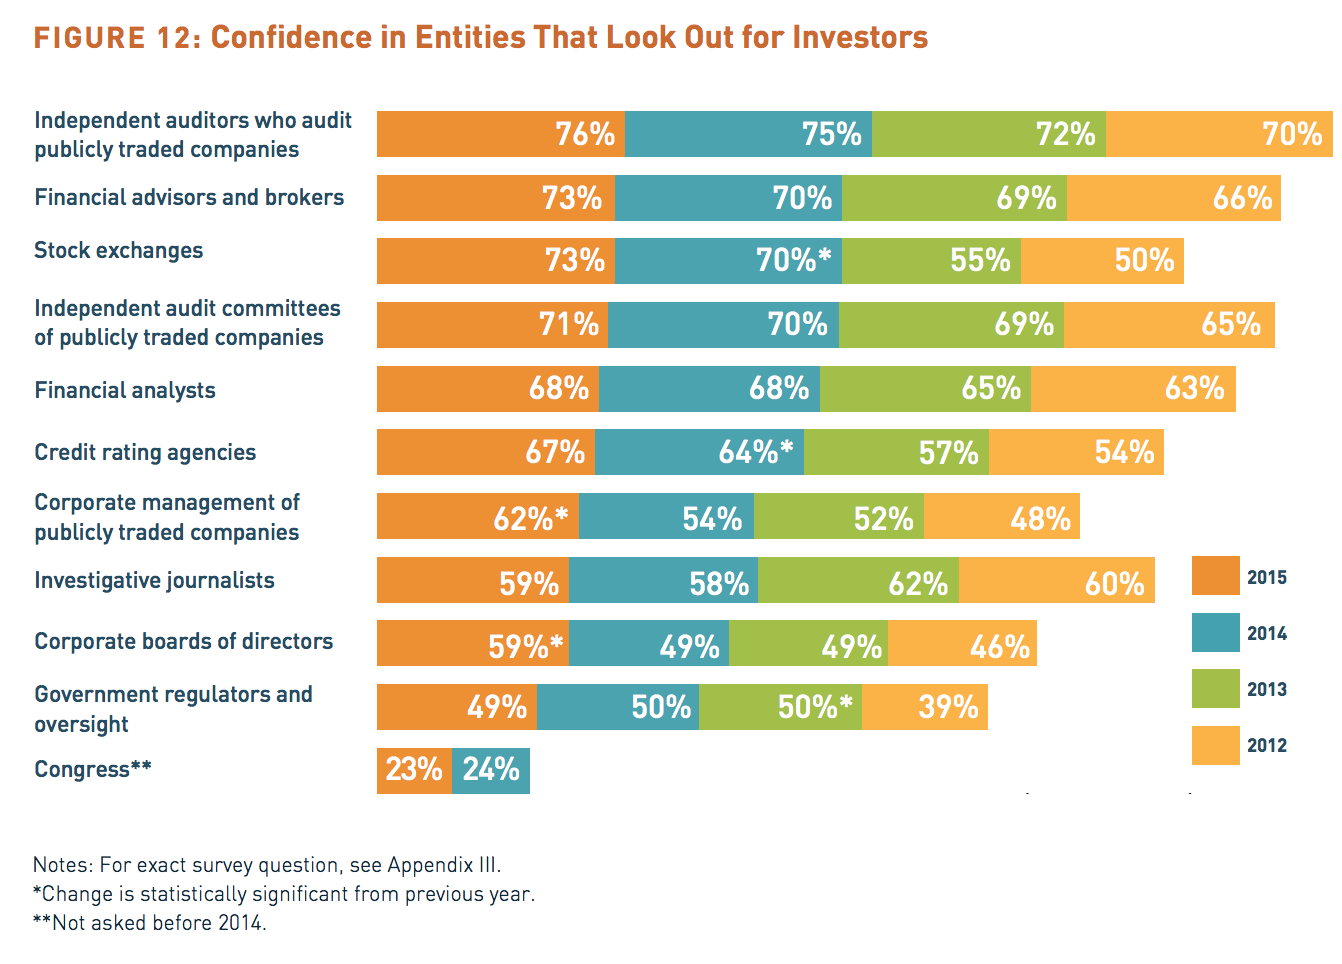 entities that look out for investors